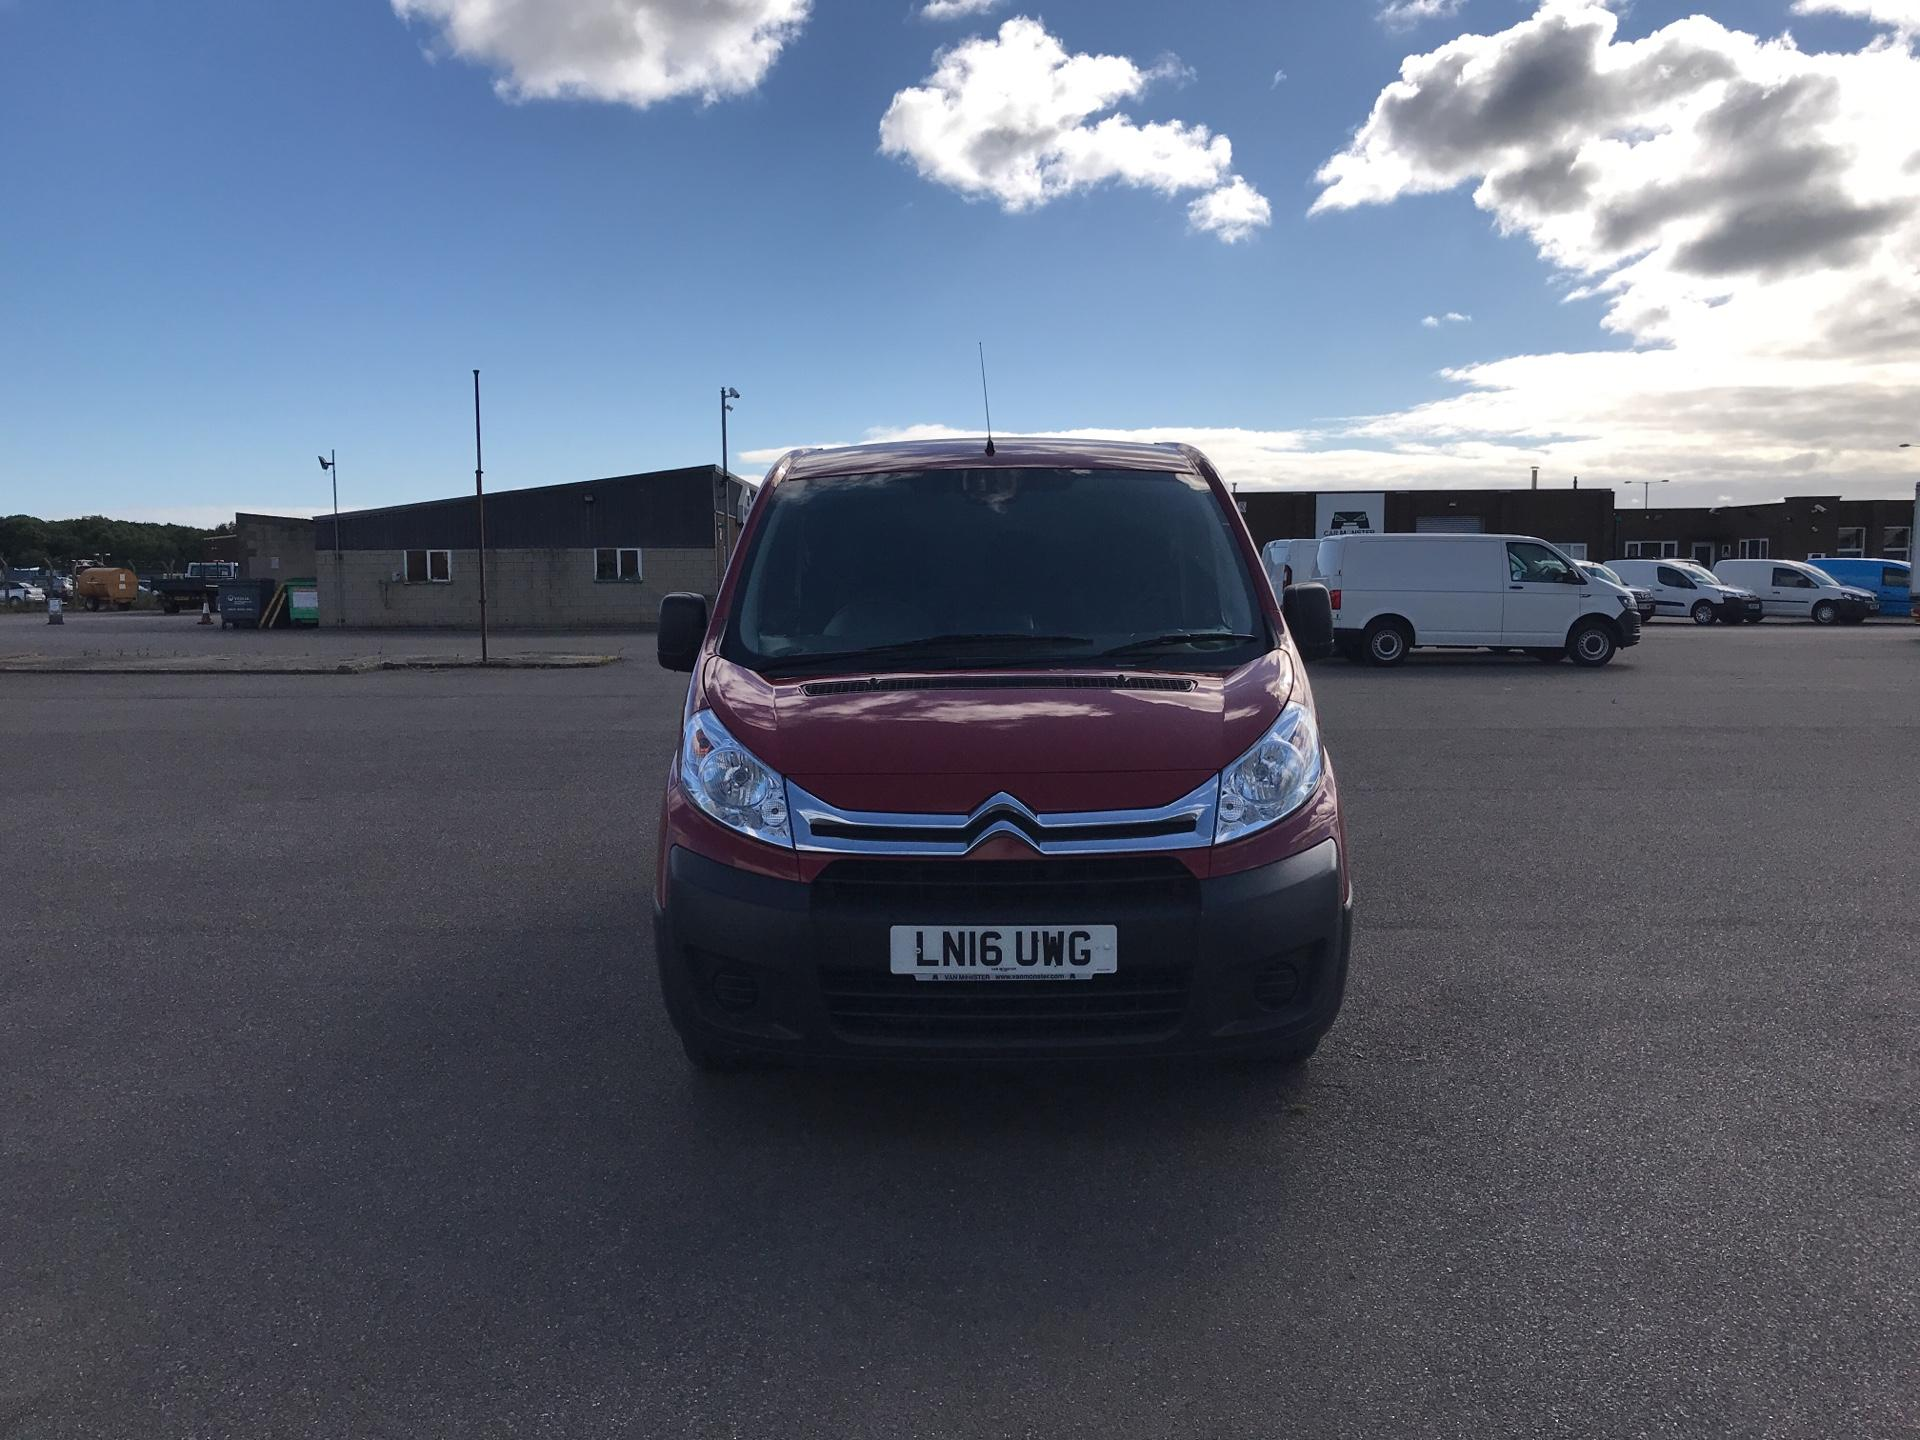 2016 Citroen Dispatch L1 DIESEL 1000 1.6 HDI H1 VAN ENTERPRISE EURO 4/5. AIR CON, SAT NAV (LN16UWG) Image 8